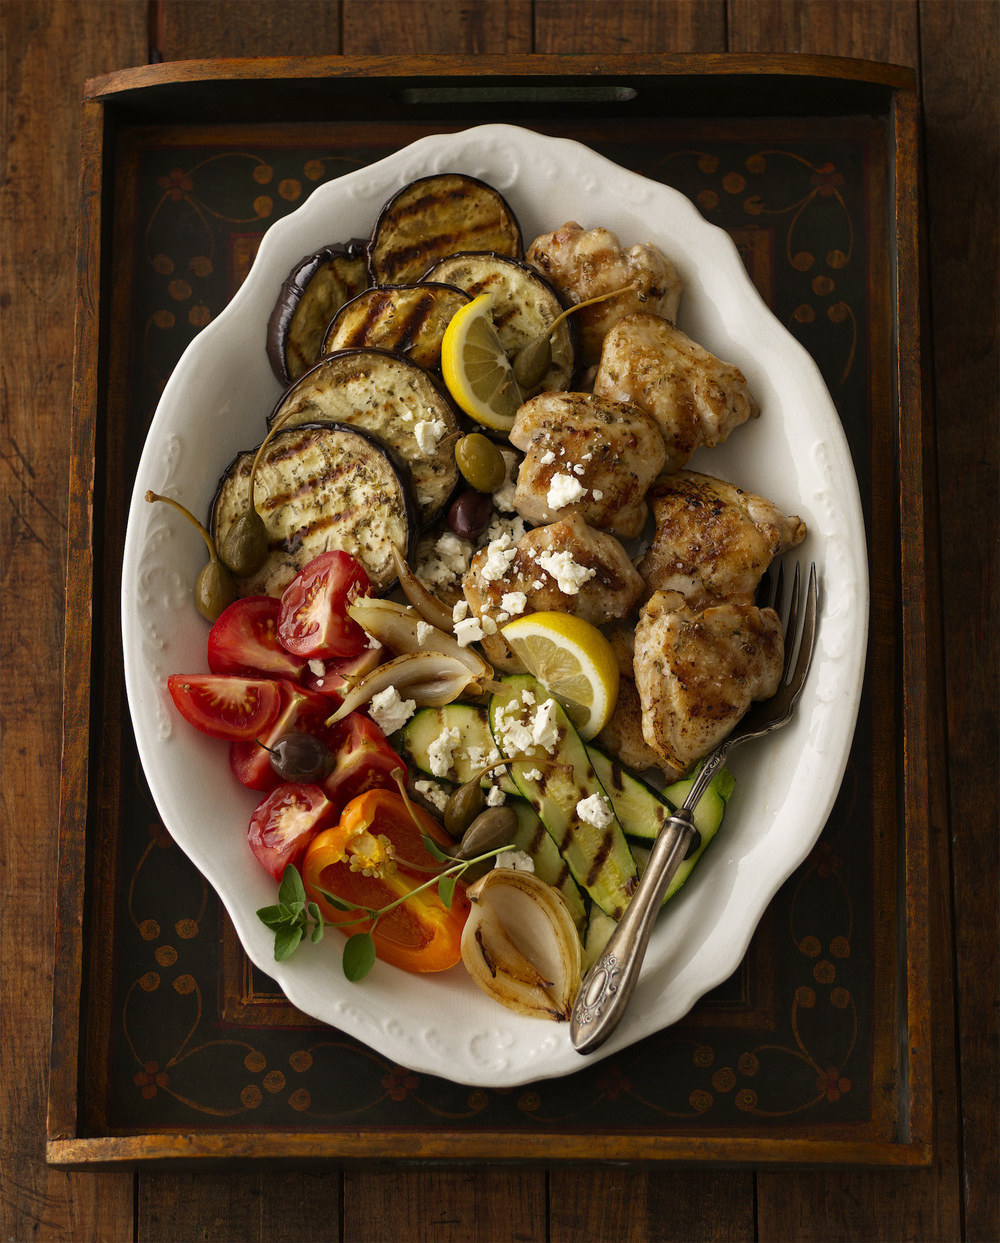 sizzling deconstructed ratatouille platter (click here for recipe)      photo: Dennis Becker